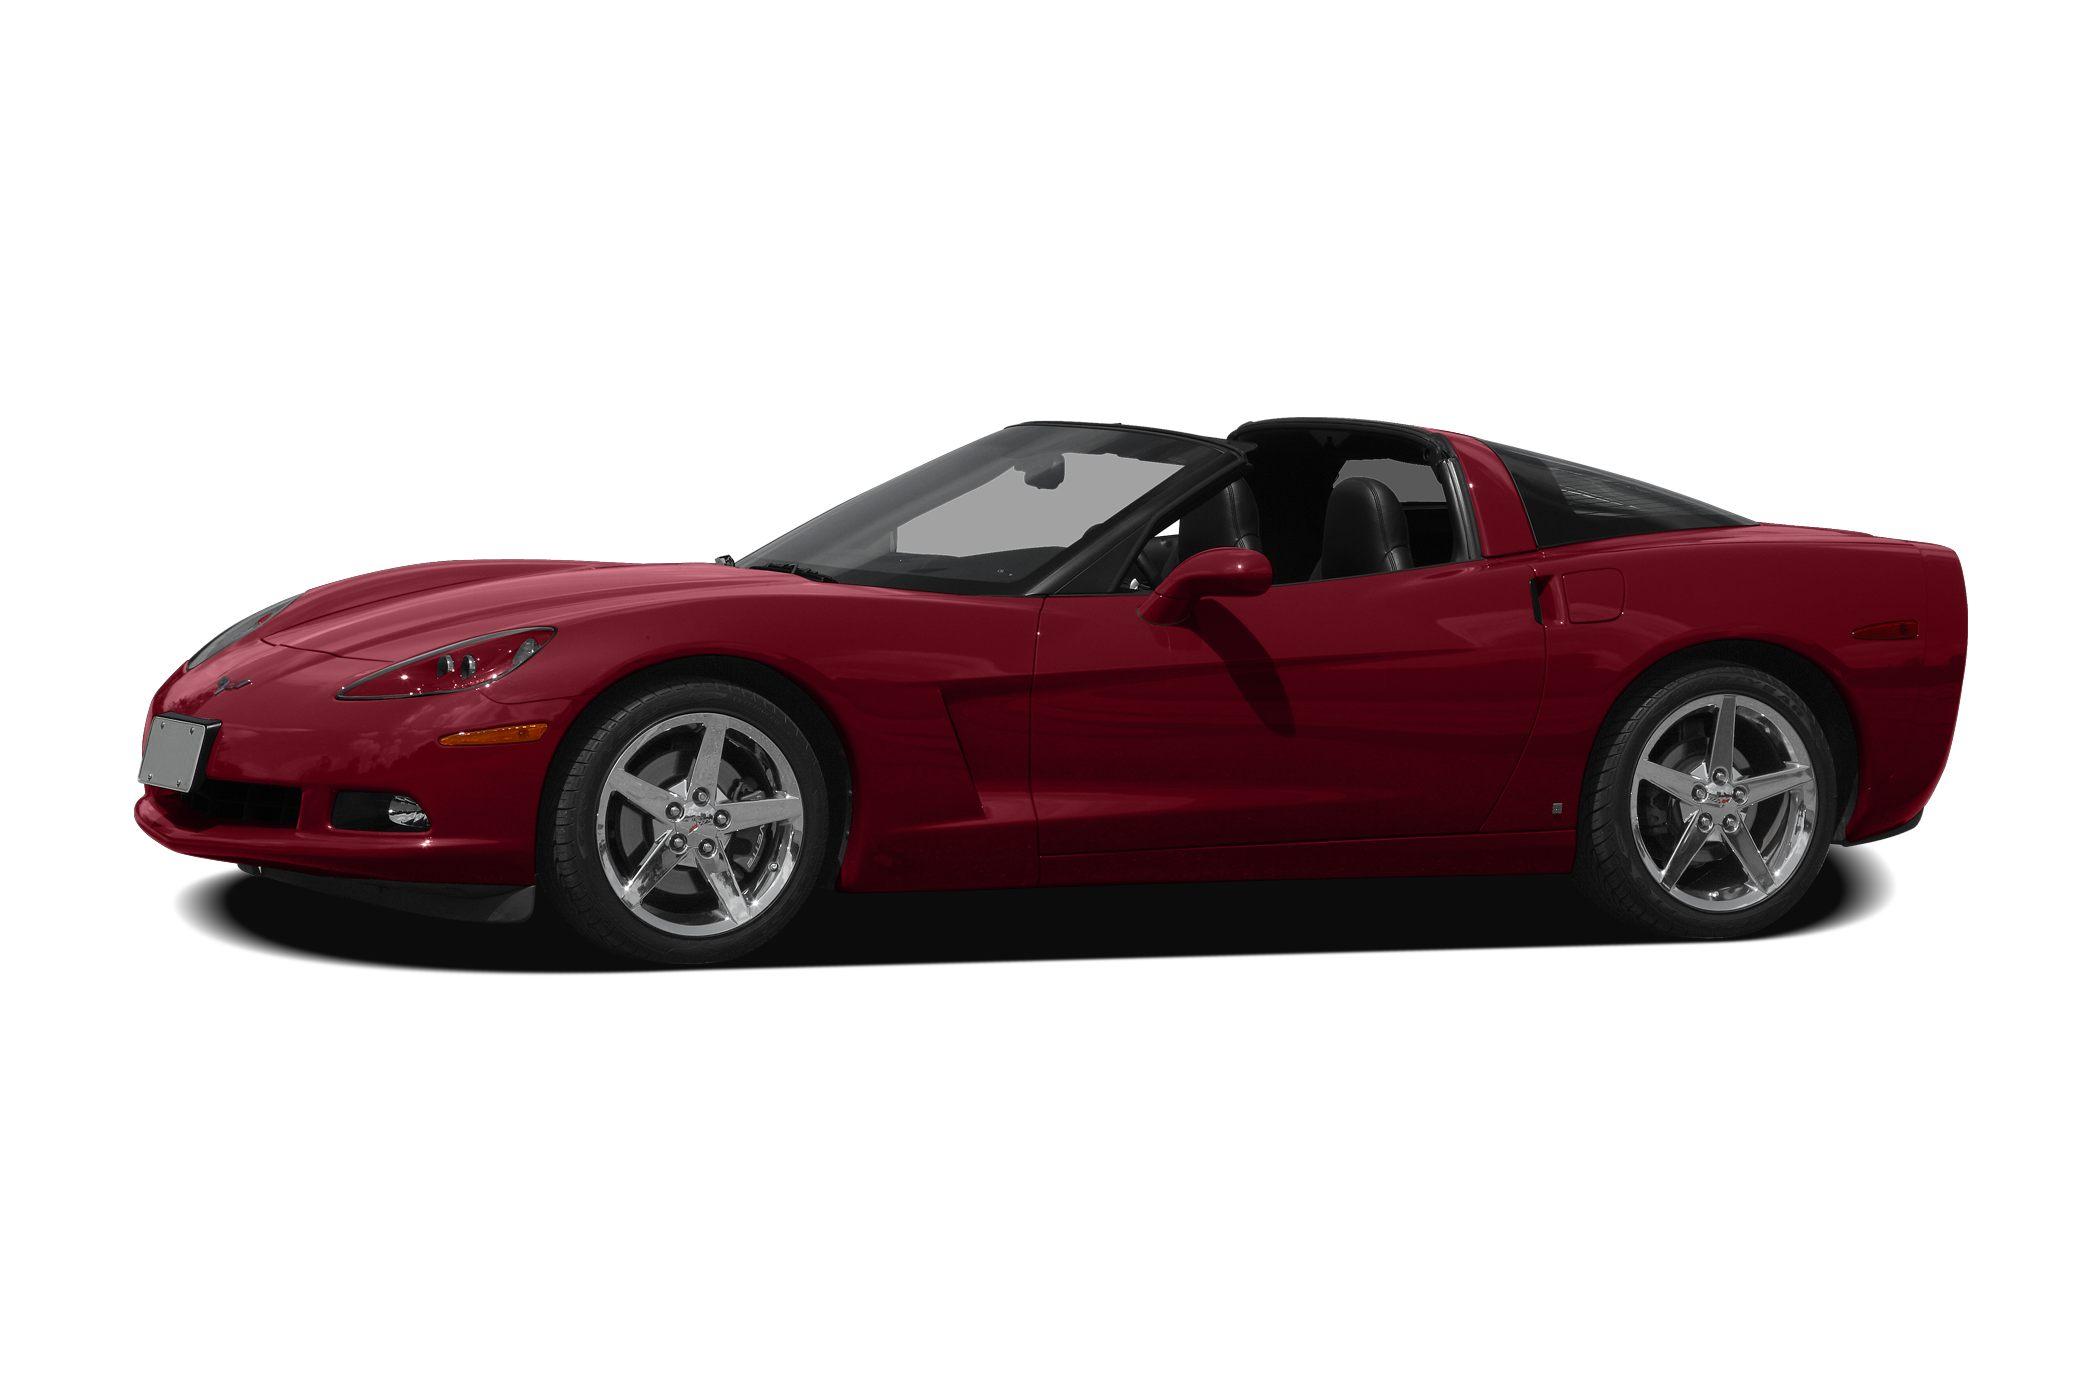 2009 Chevrolet Corvette Coupe for sale in Nashua for $49,995 with 9,986 miles.